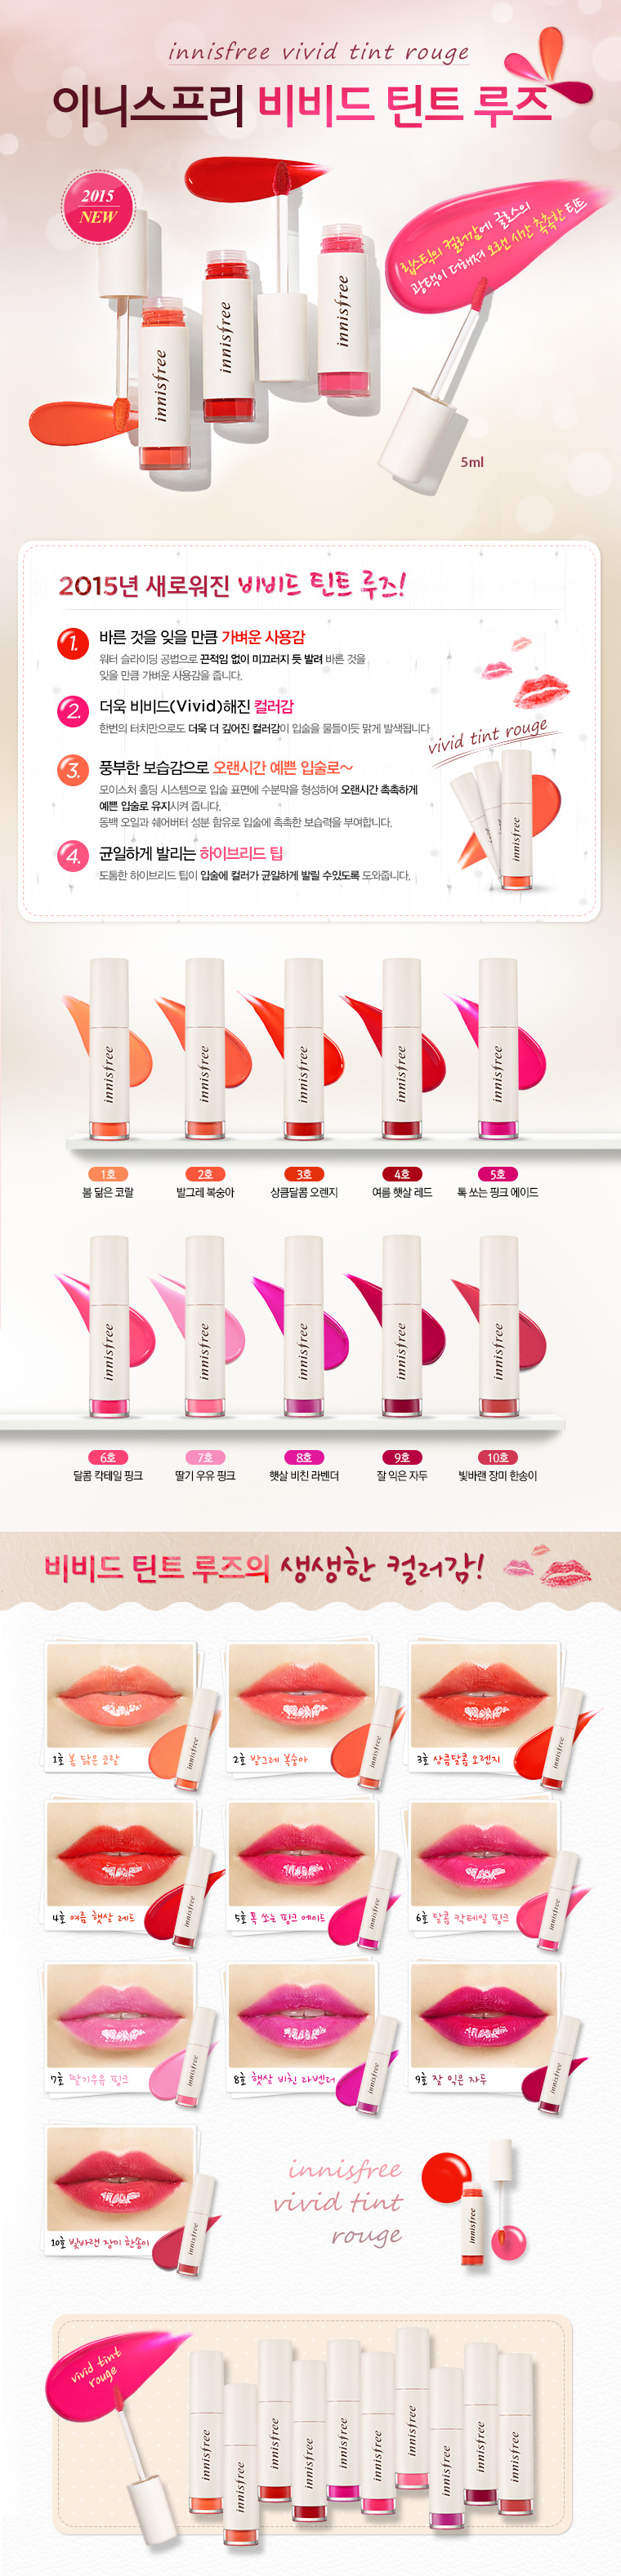 bang mau son moi Innisfree Vivid Tint Rouge NEW